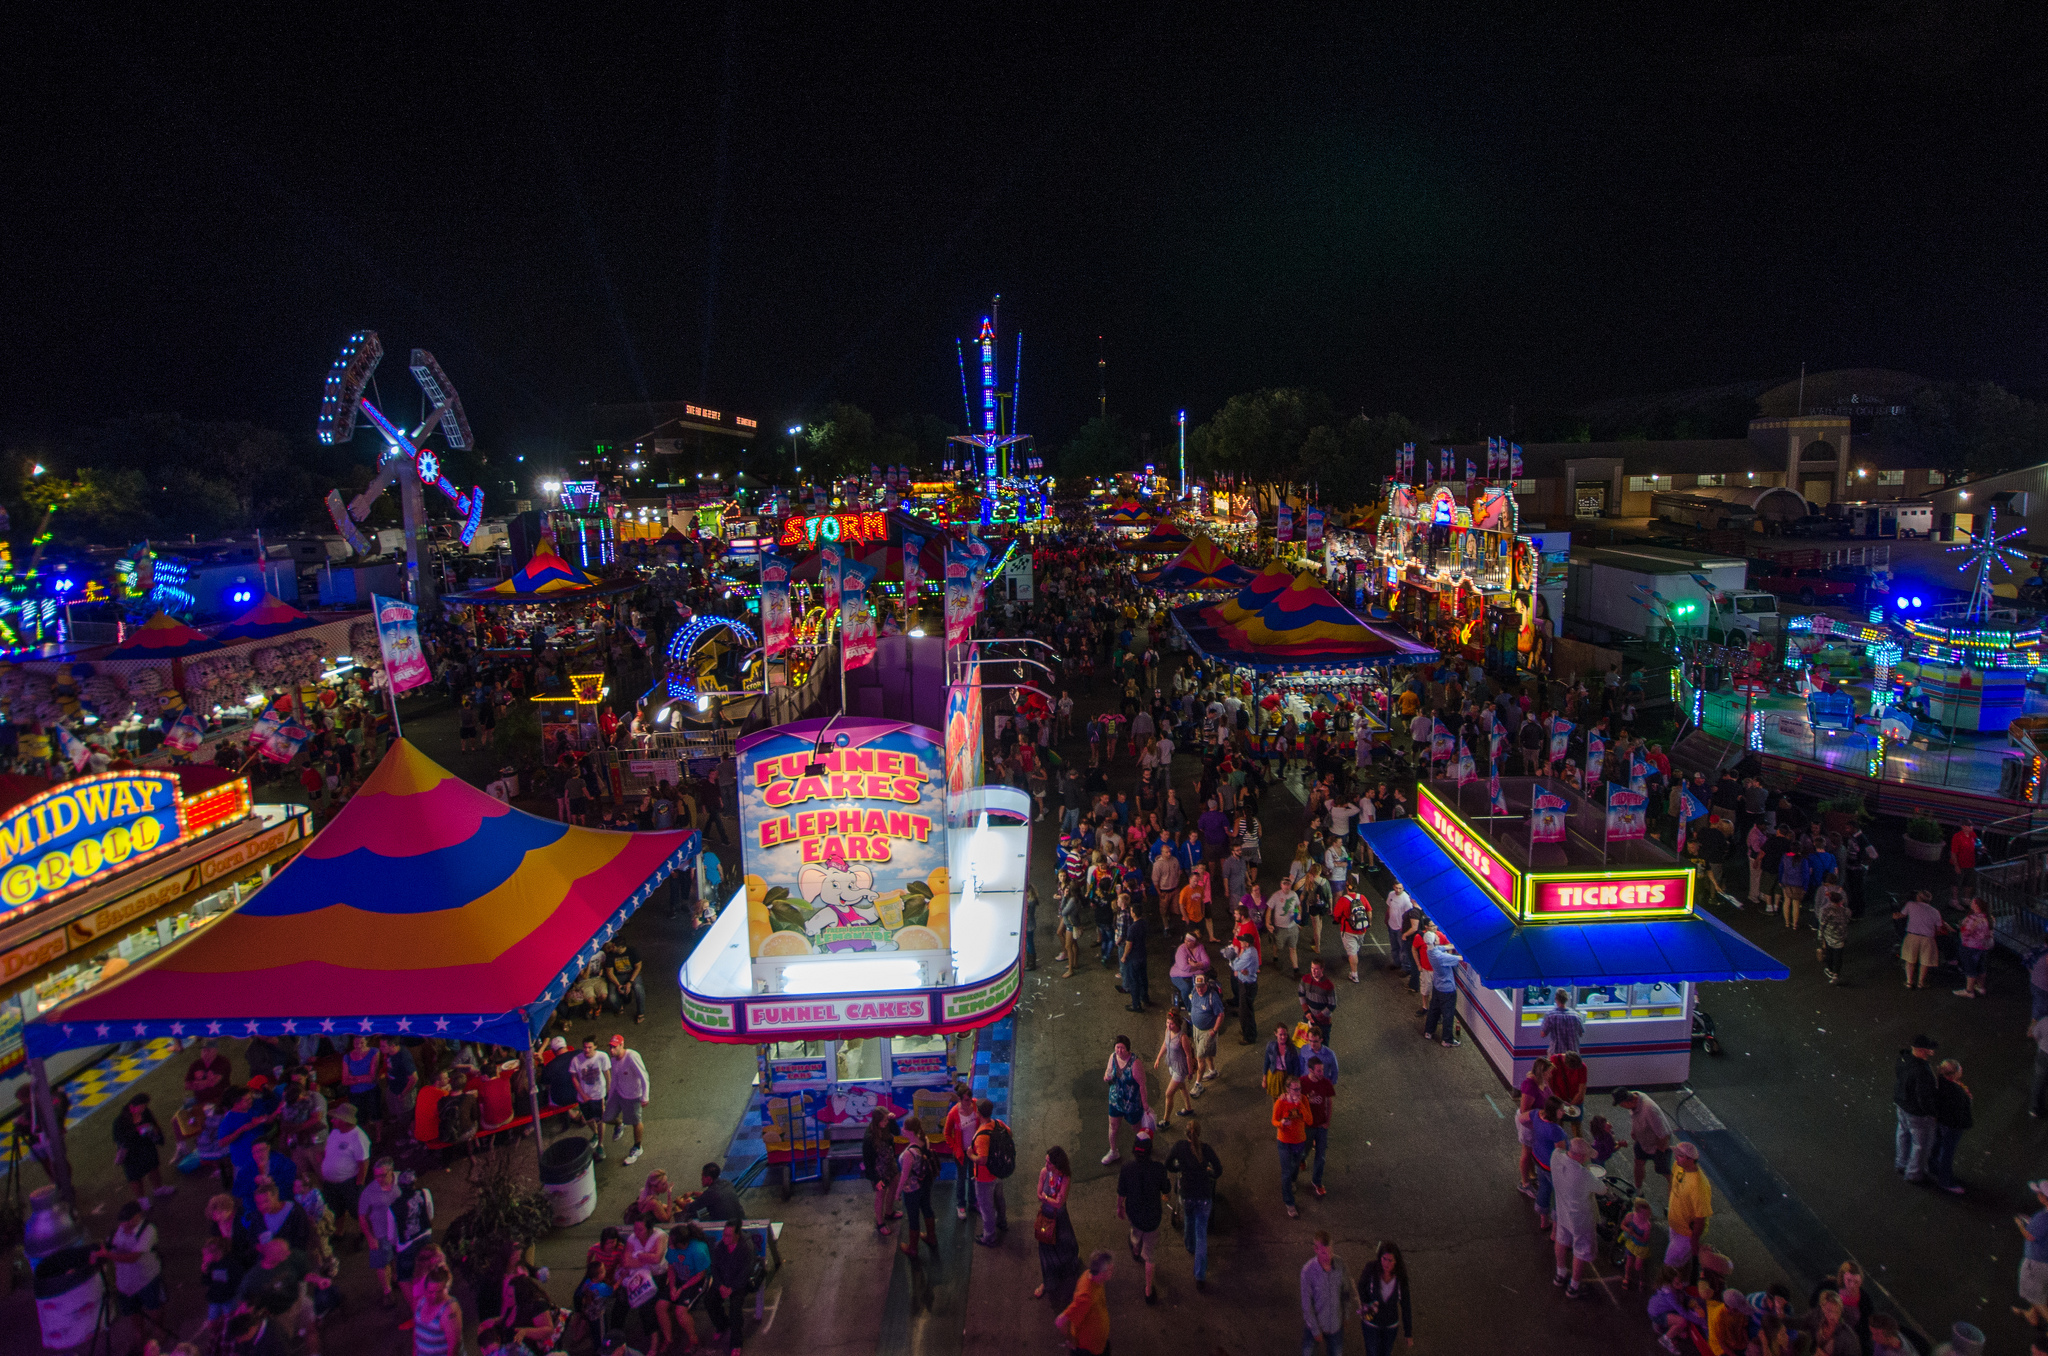 The MN State Fair Midway at night | © m01229/Flickr